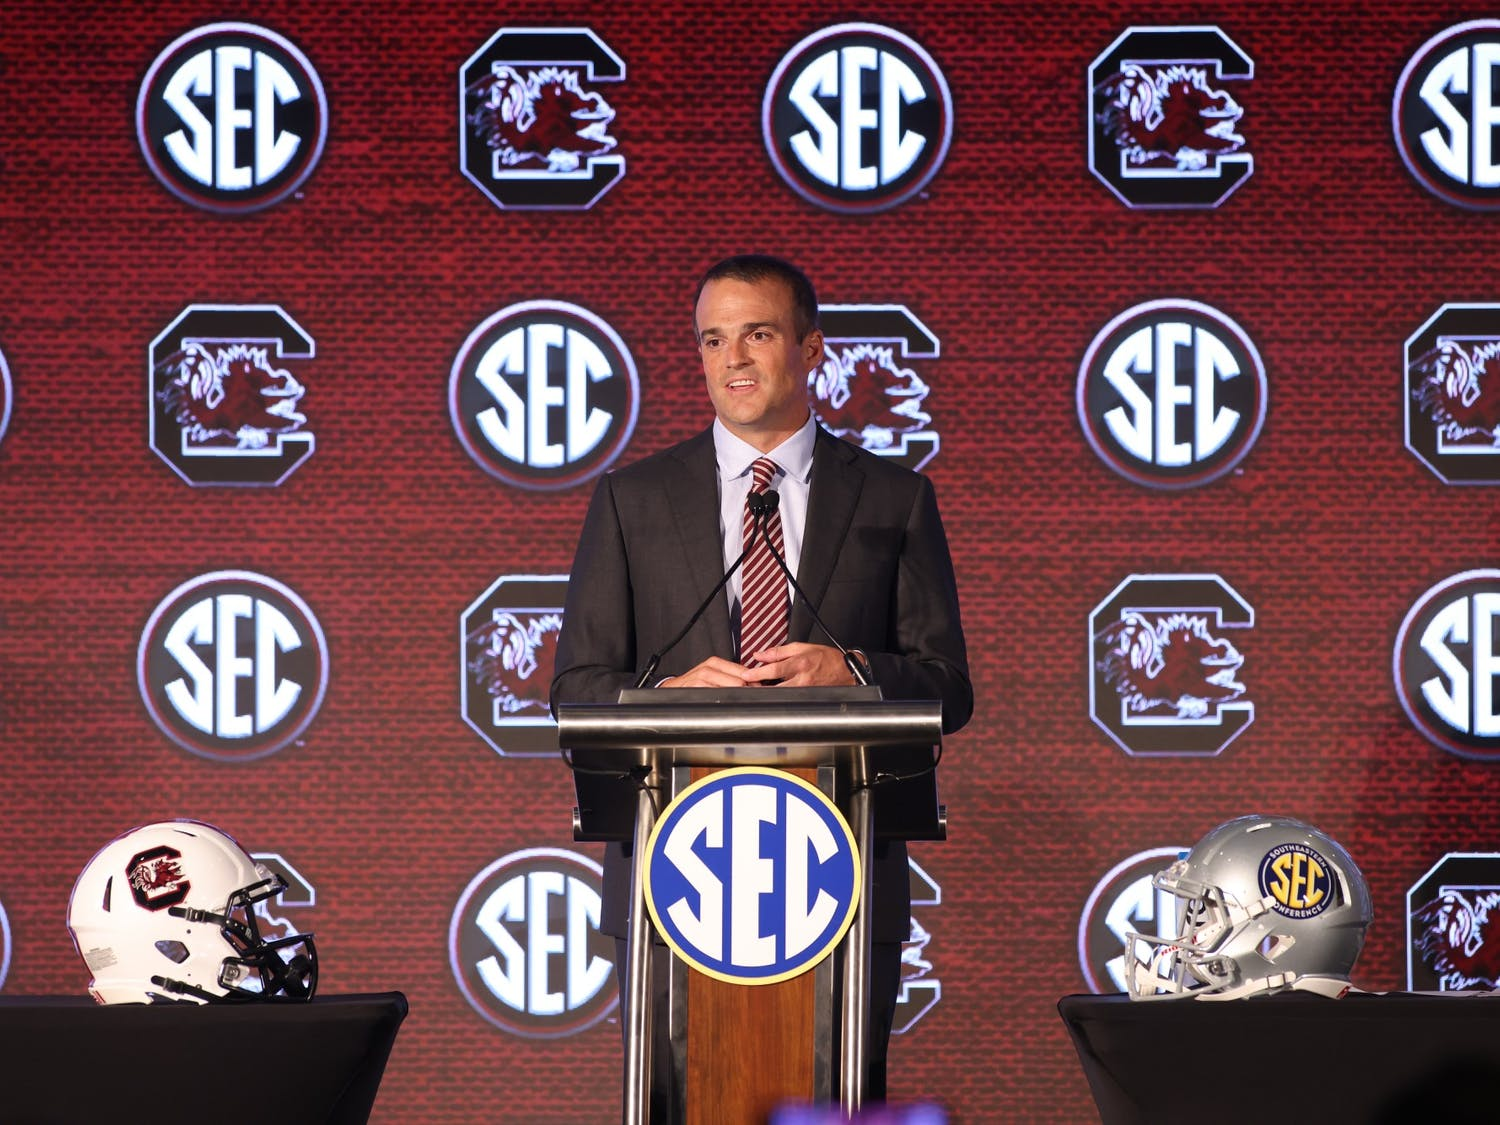 University of South Carolina head coach Shane Beamer speaks to the media during the 2021 SEC Football Kickoff Media Days on July 19,2021 at the Wynfrey Hotel,Hoover,Alabama. (Jimmie Mitchell/SEC)